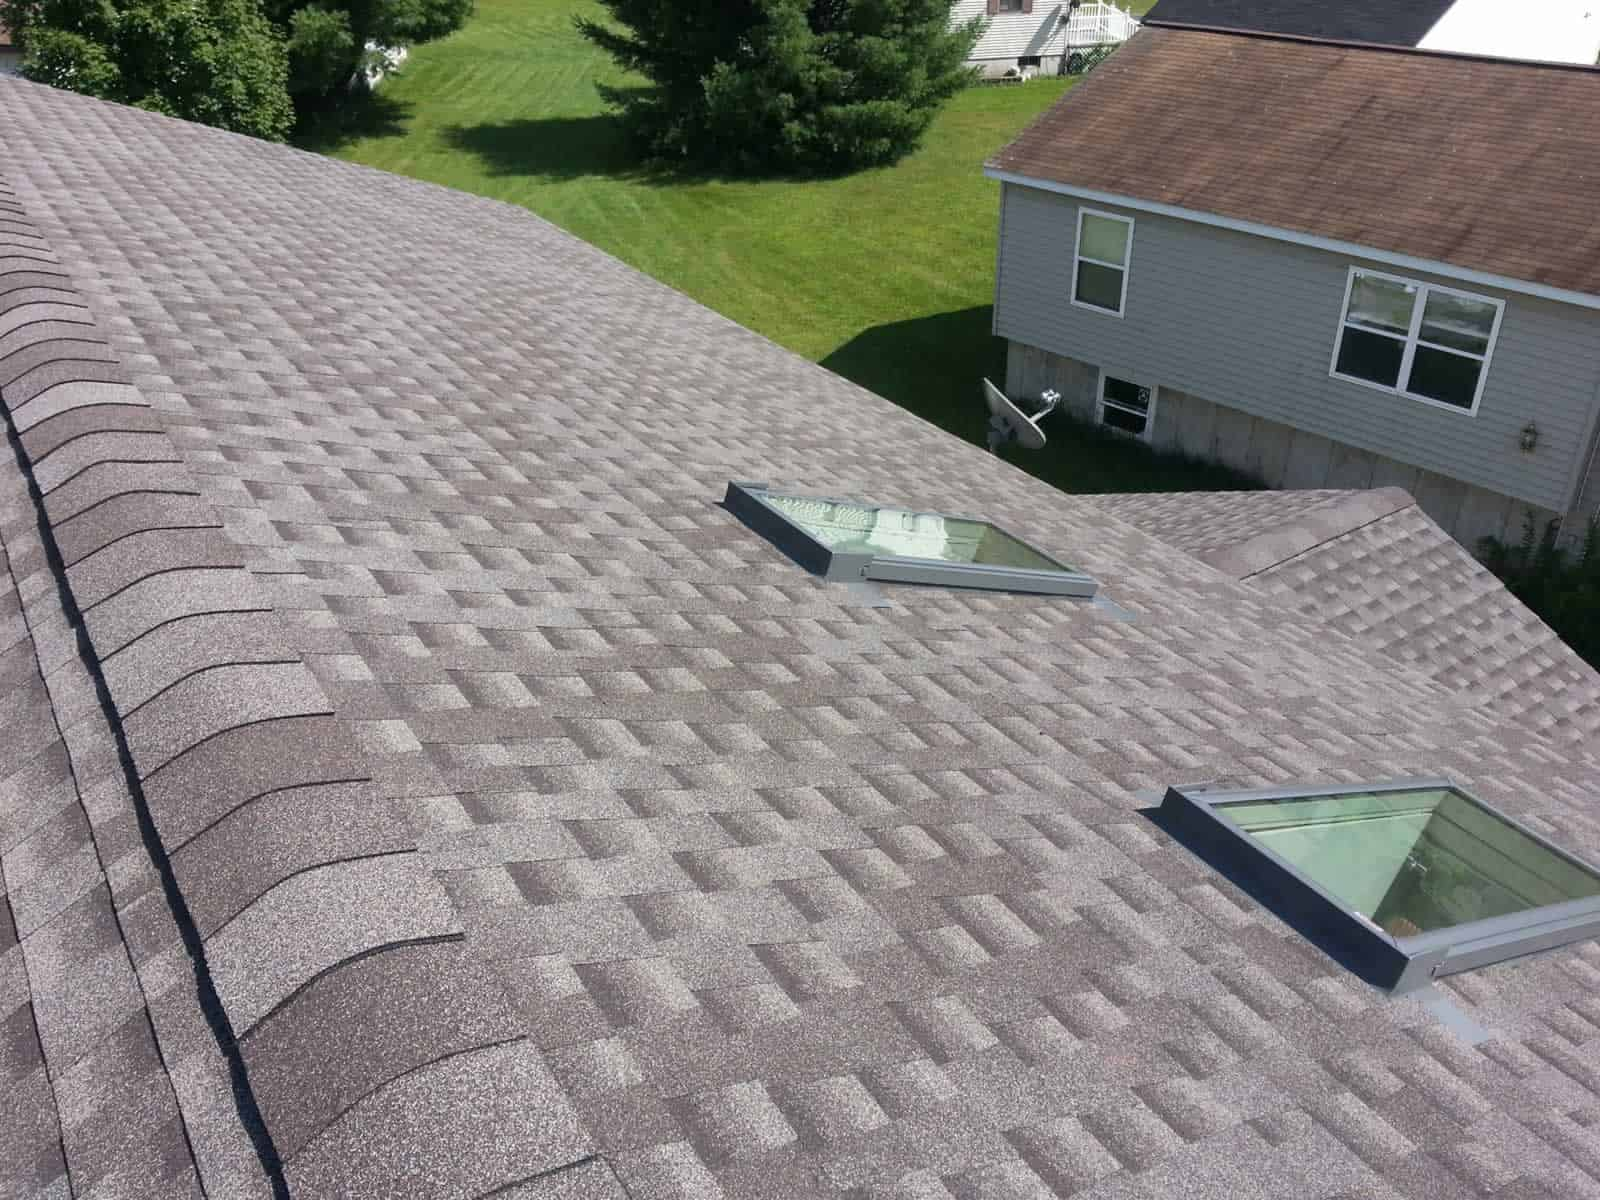 Gonzales Roofing Llc New Asphalt Roof With Skylights